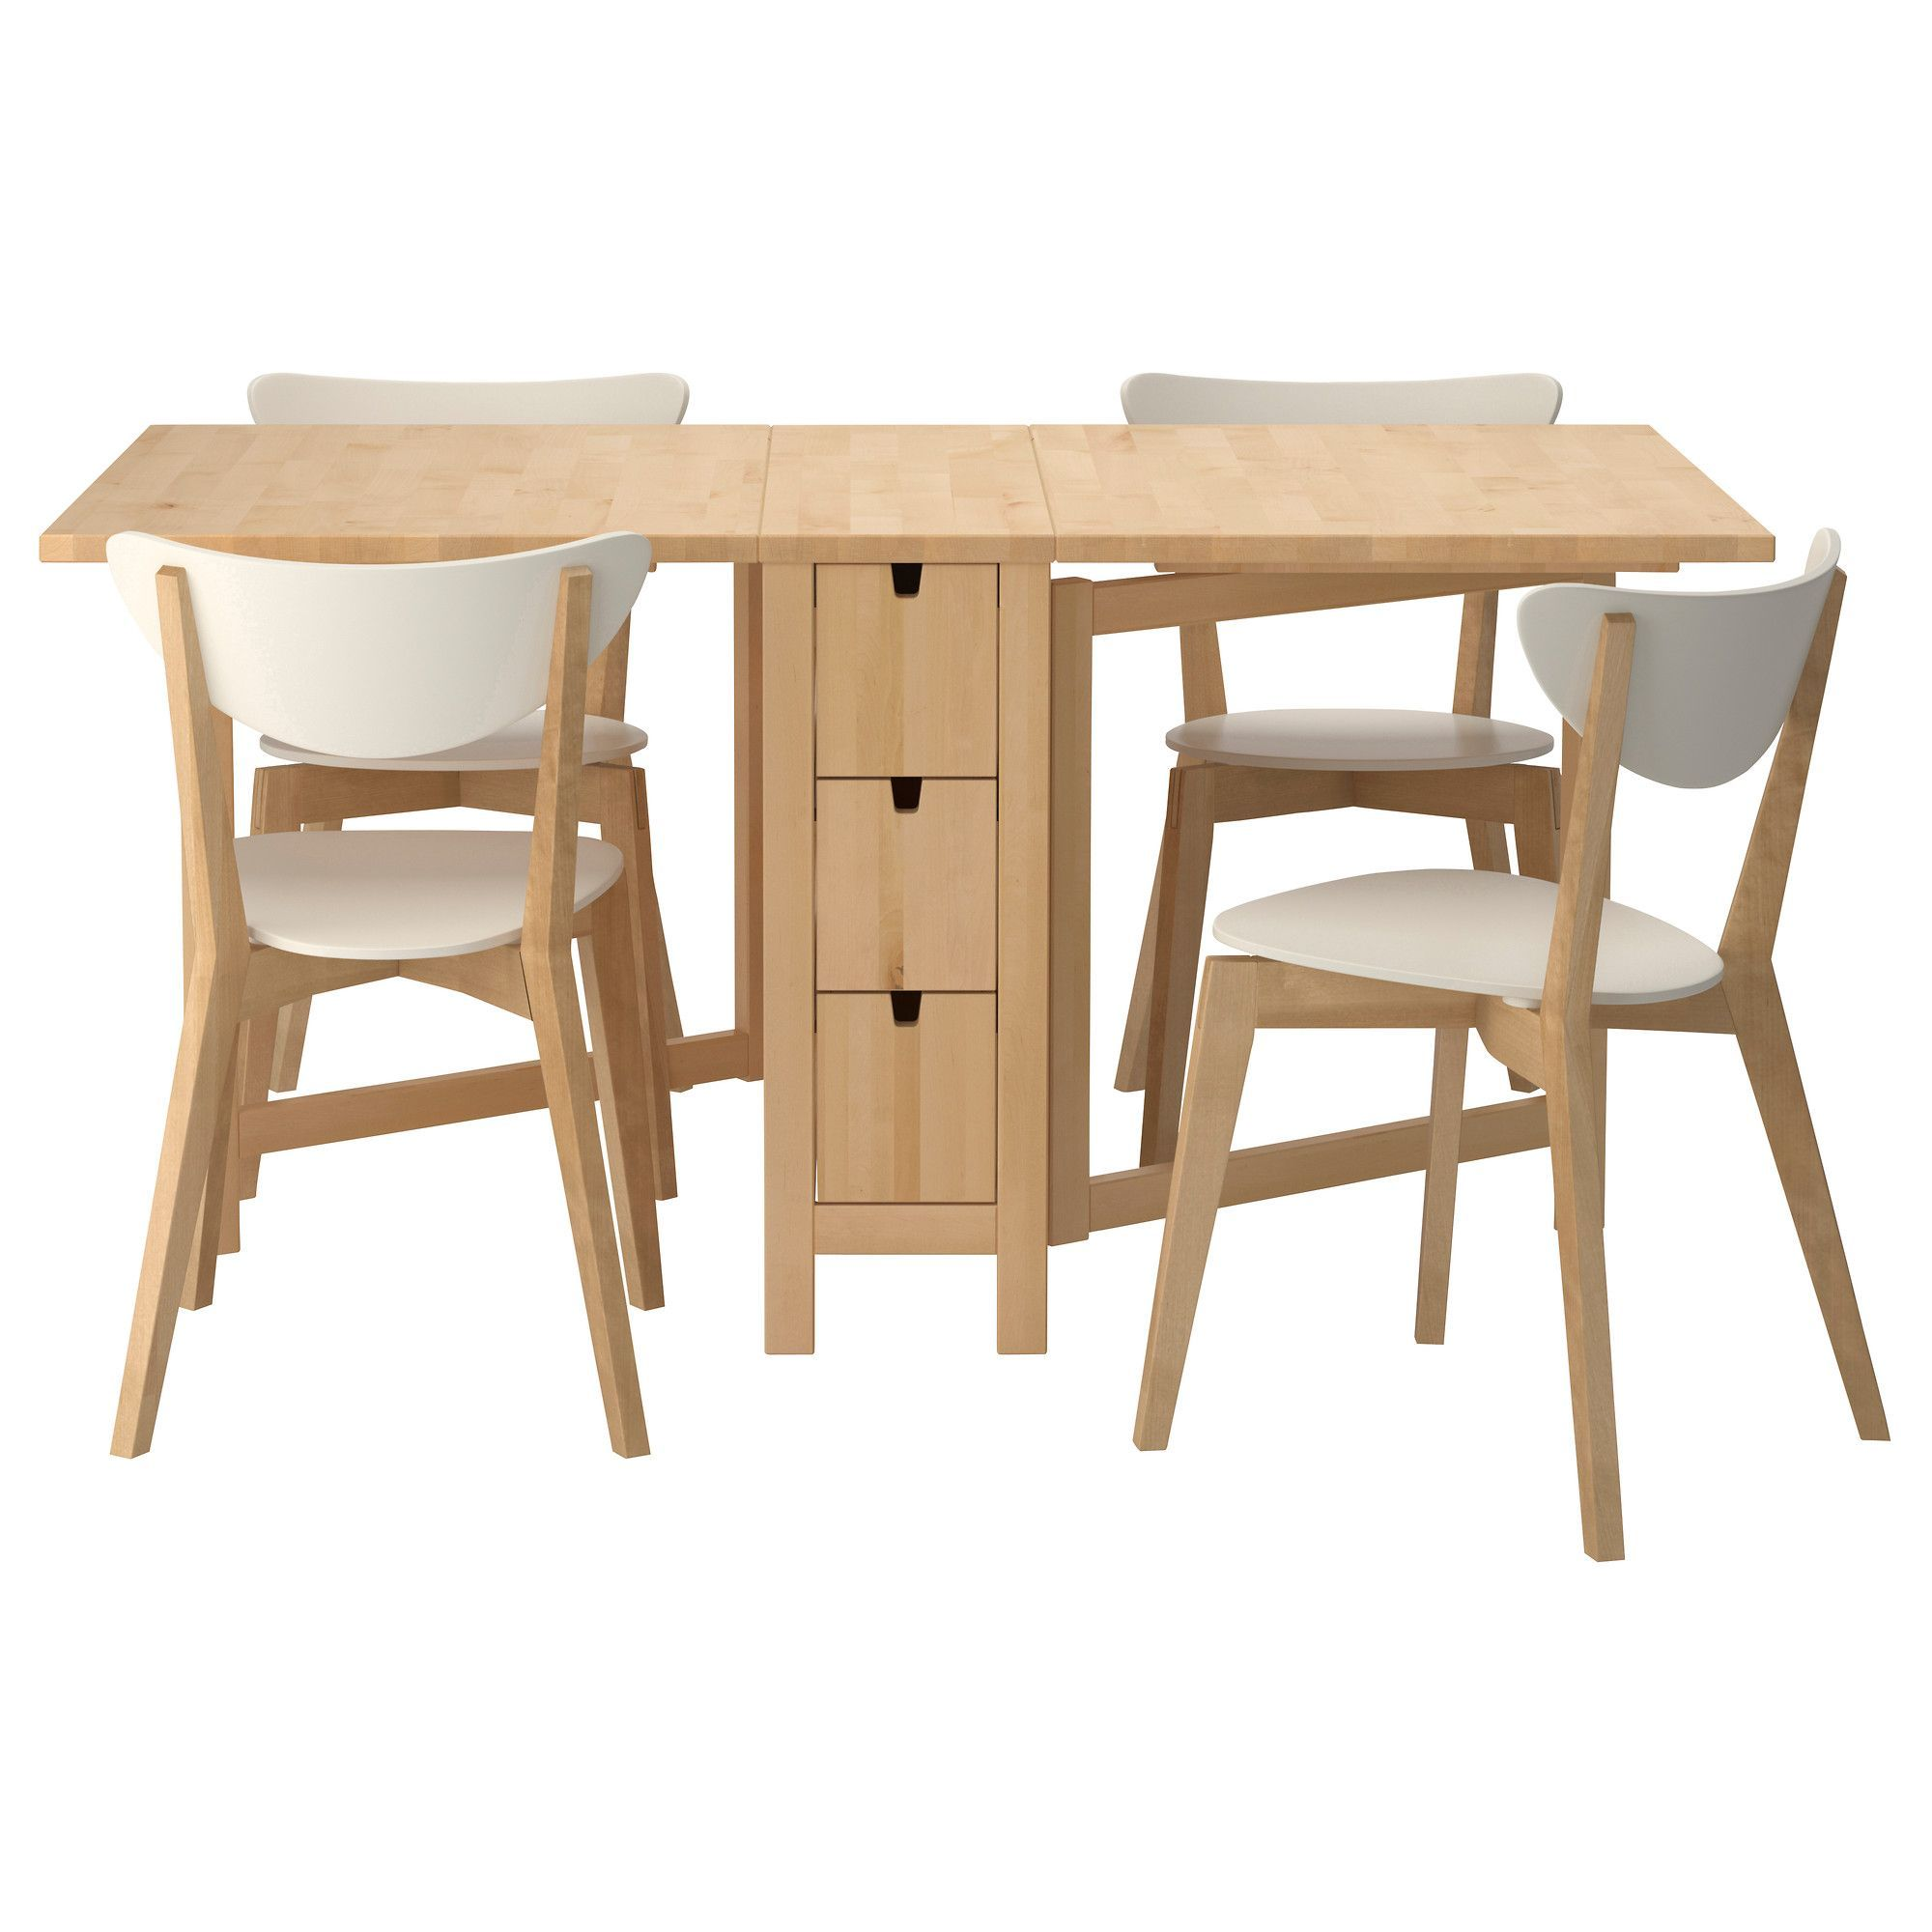 Gorgeous small dining table that can be folded complete with the chairs inspirational foldable - Small folding dining table ...